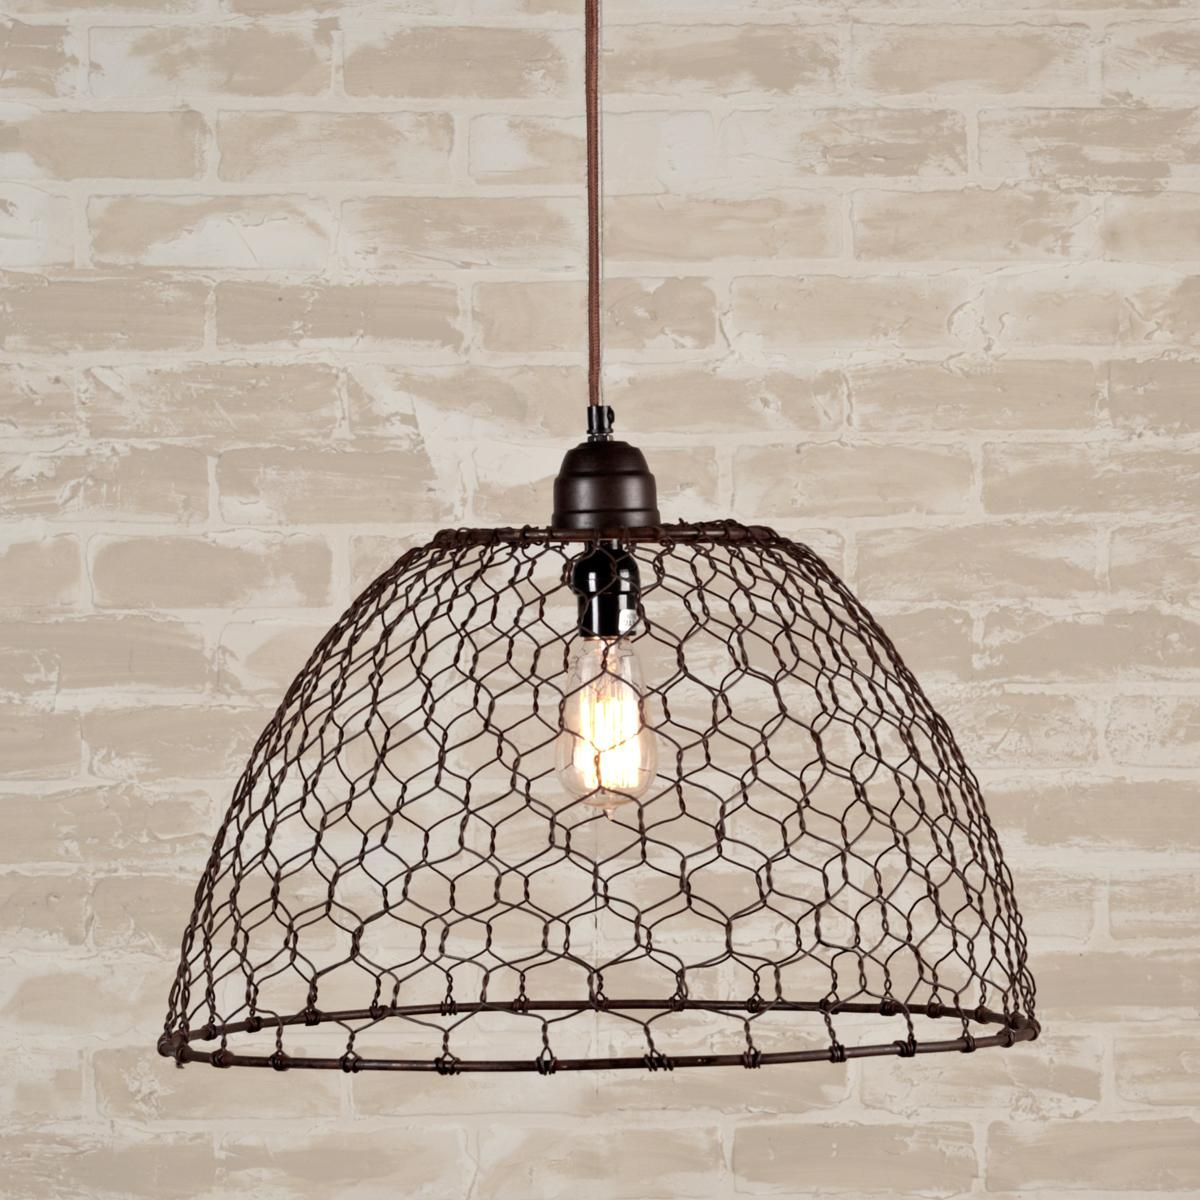 Red Kitchen Light Shades Chicken Wire Basket Pendant Light Chicken Wire Wire Pendant And